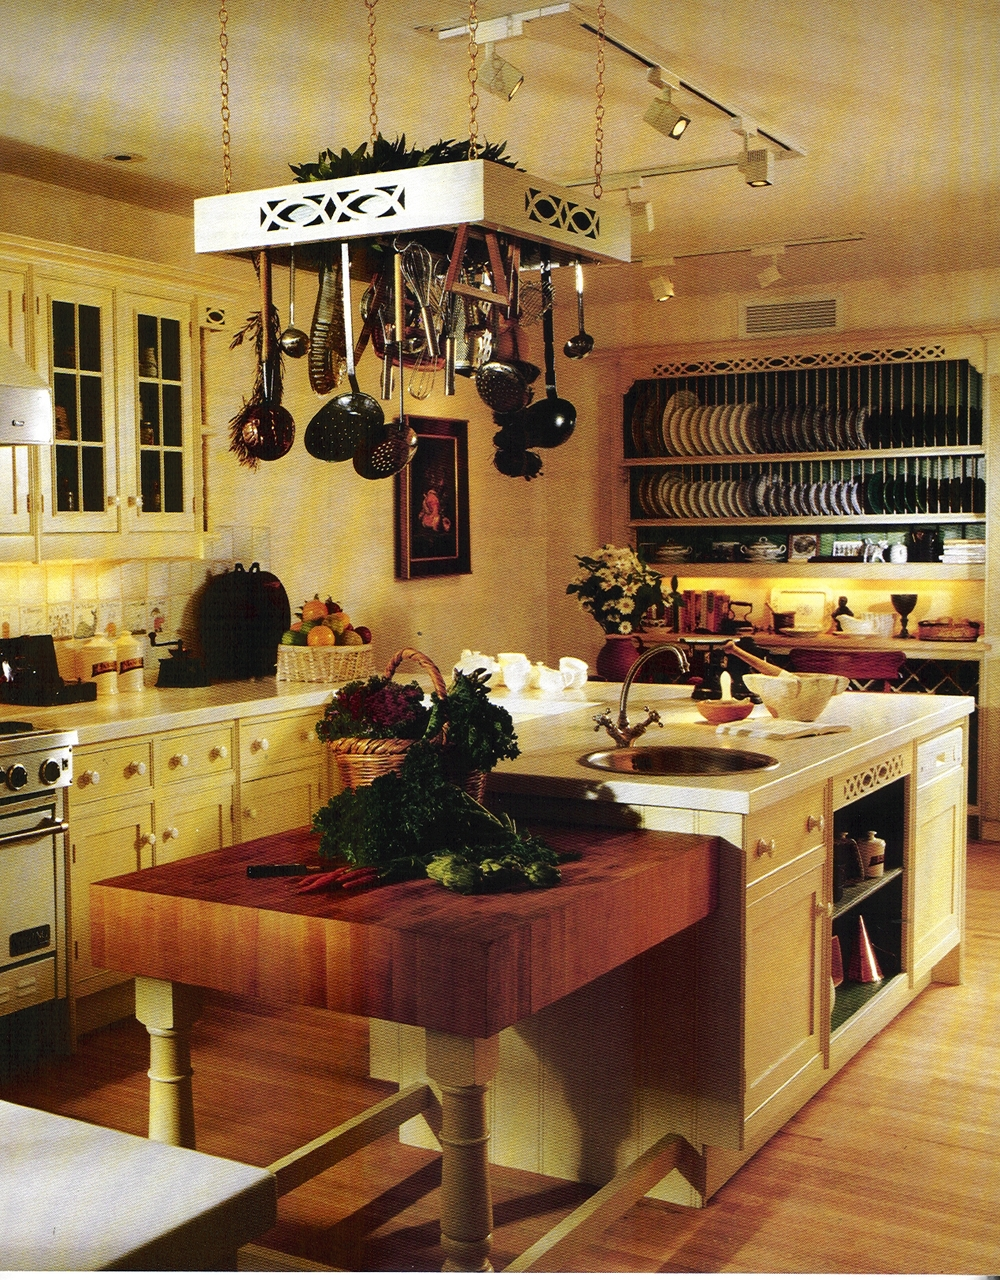 Bklyn Heights Brownstone Kitchen.JPG